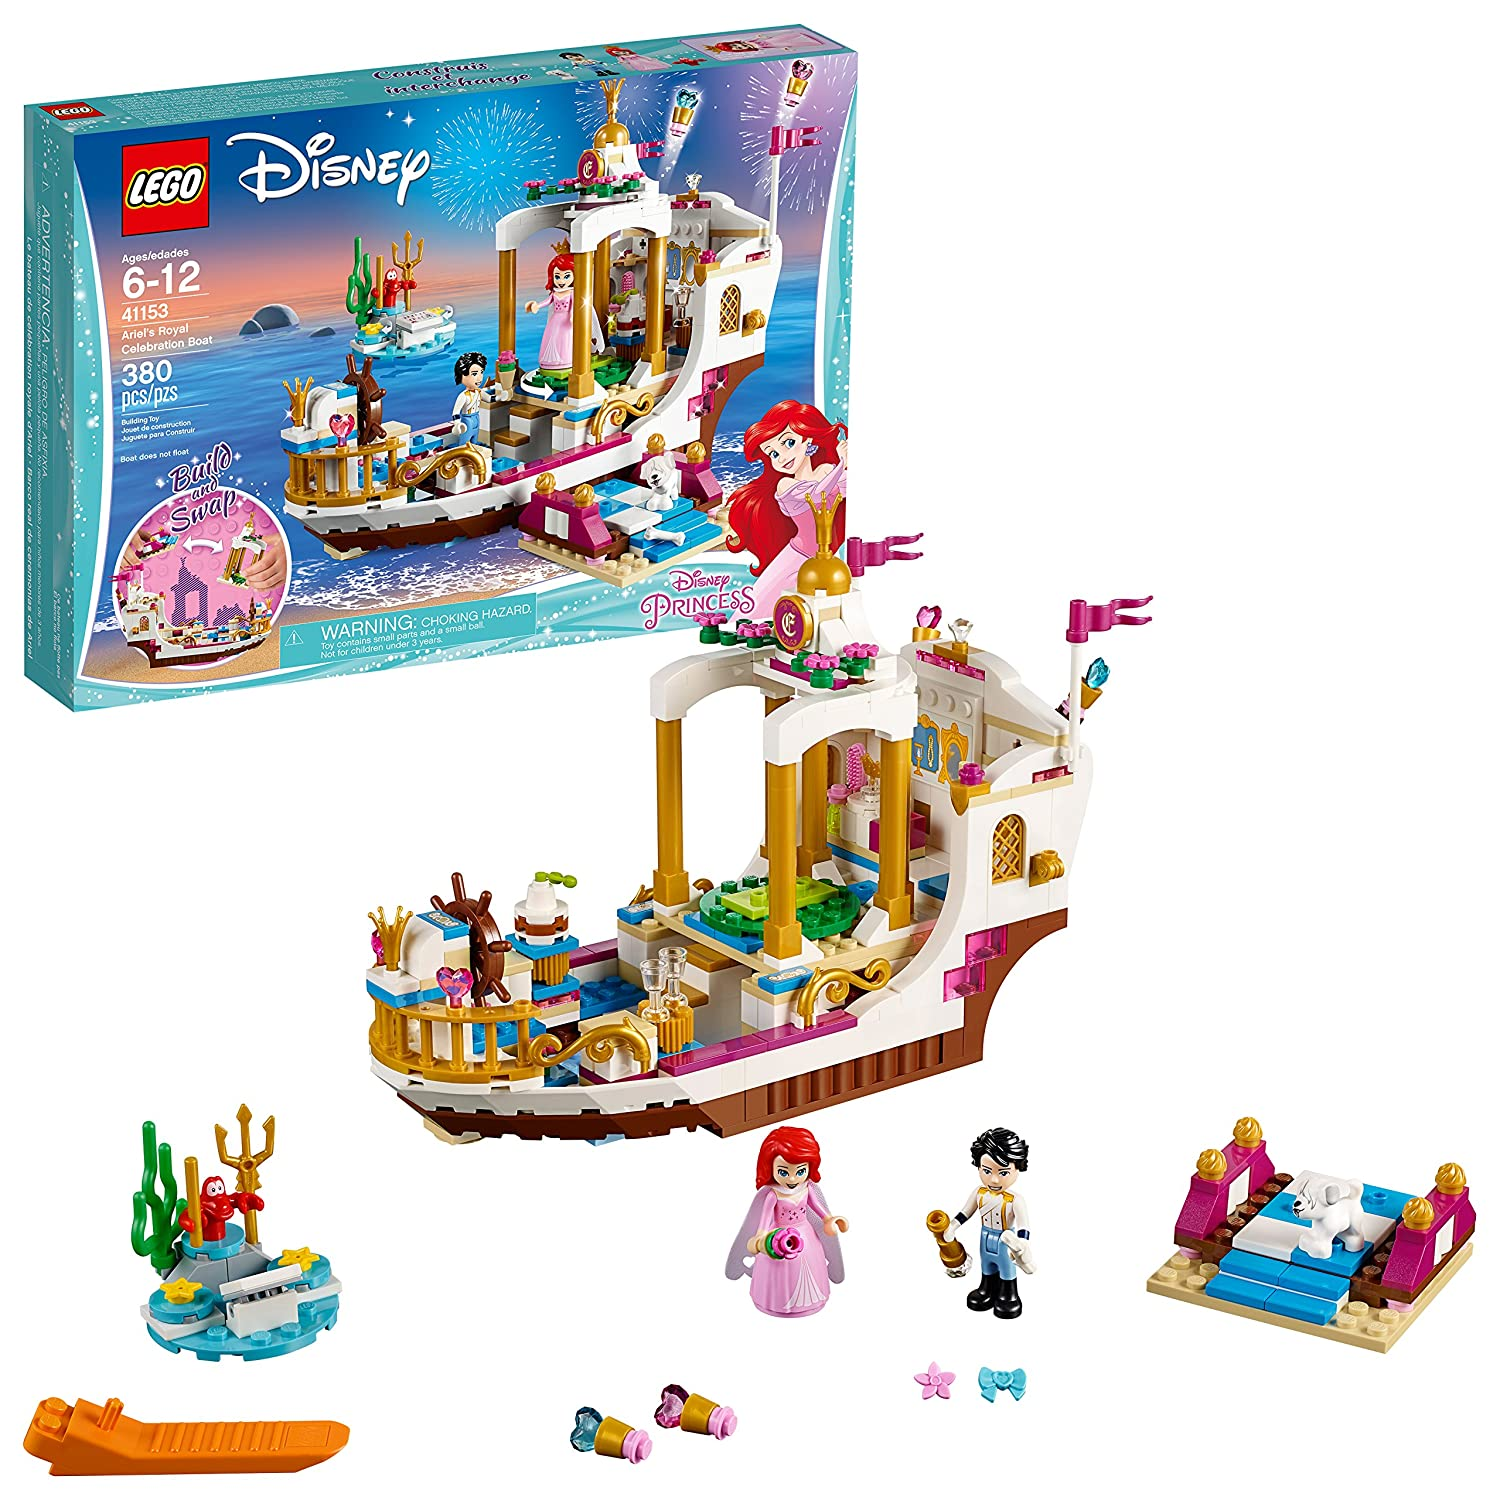 LEGO Disney Princess Disney Princess Ariel's Royal Celebration Boat 41153,, 6213304